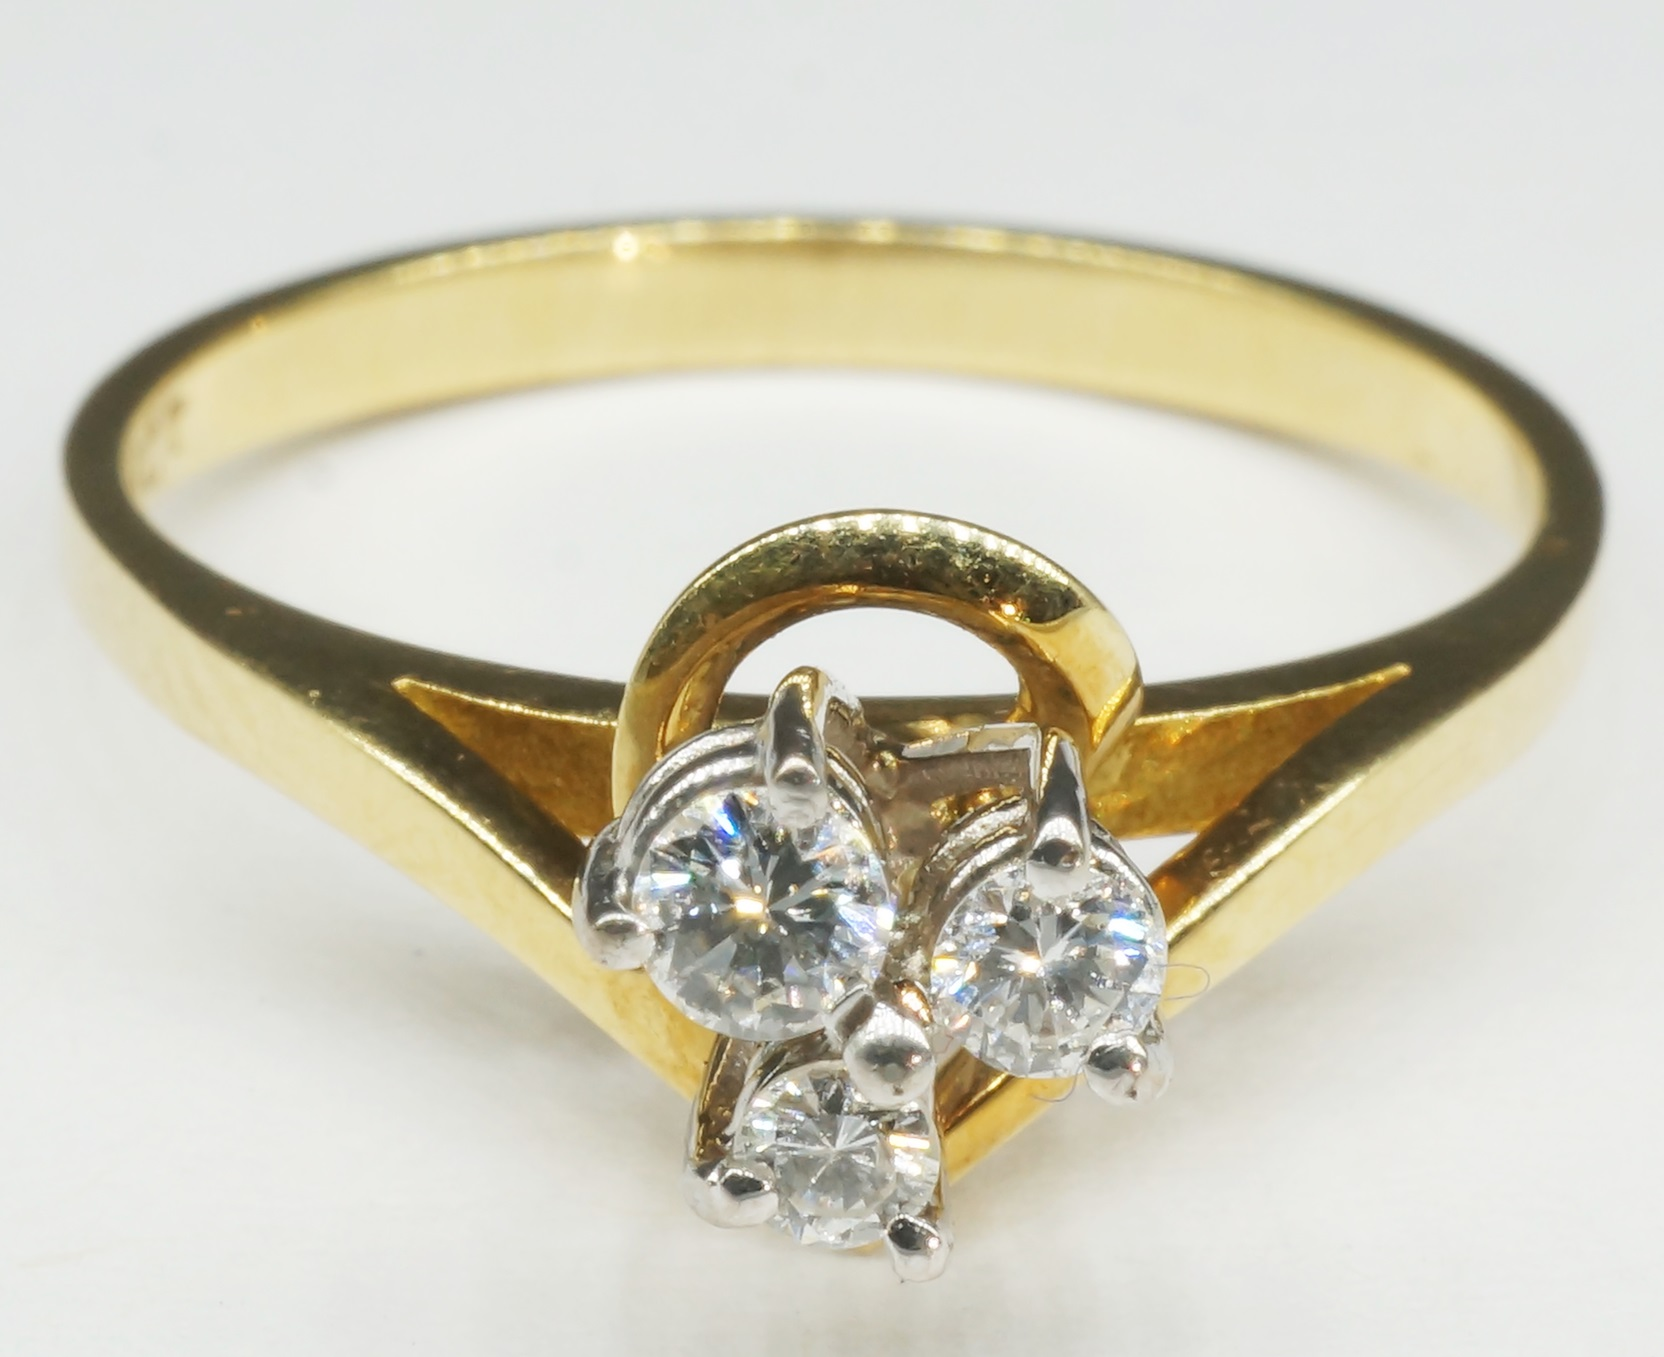 '18ct Yellow Gold with White Gold Three Claw Setting with Three round Brilliant Cut Diamonds'